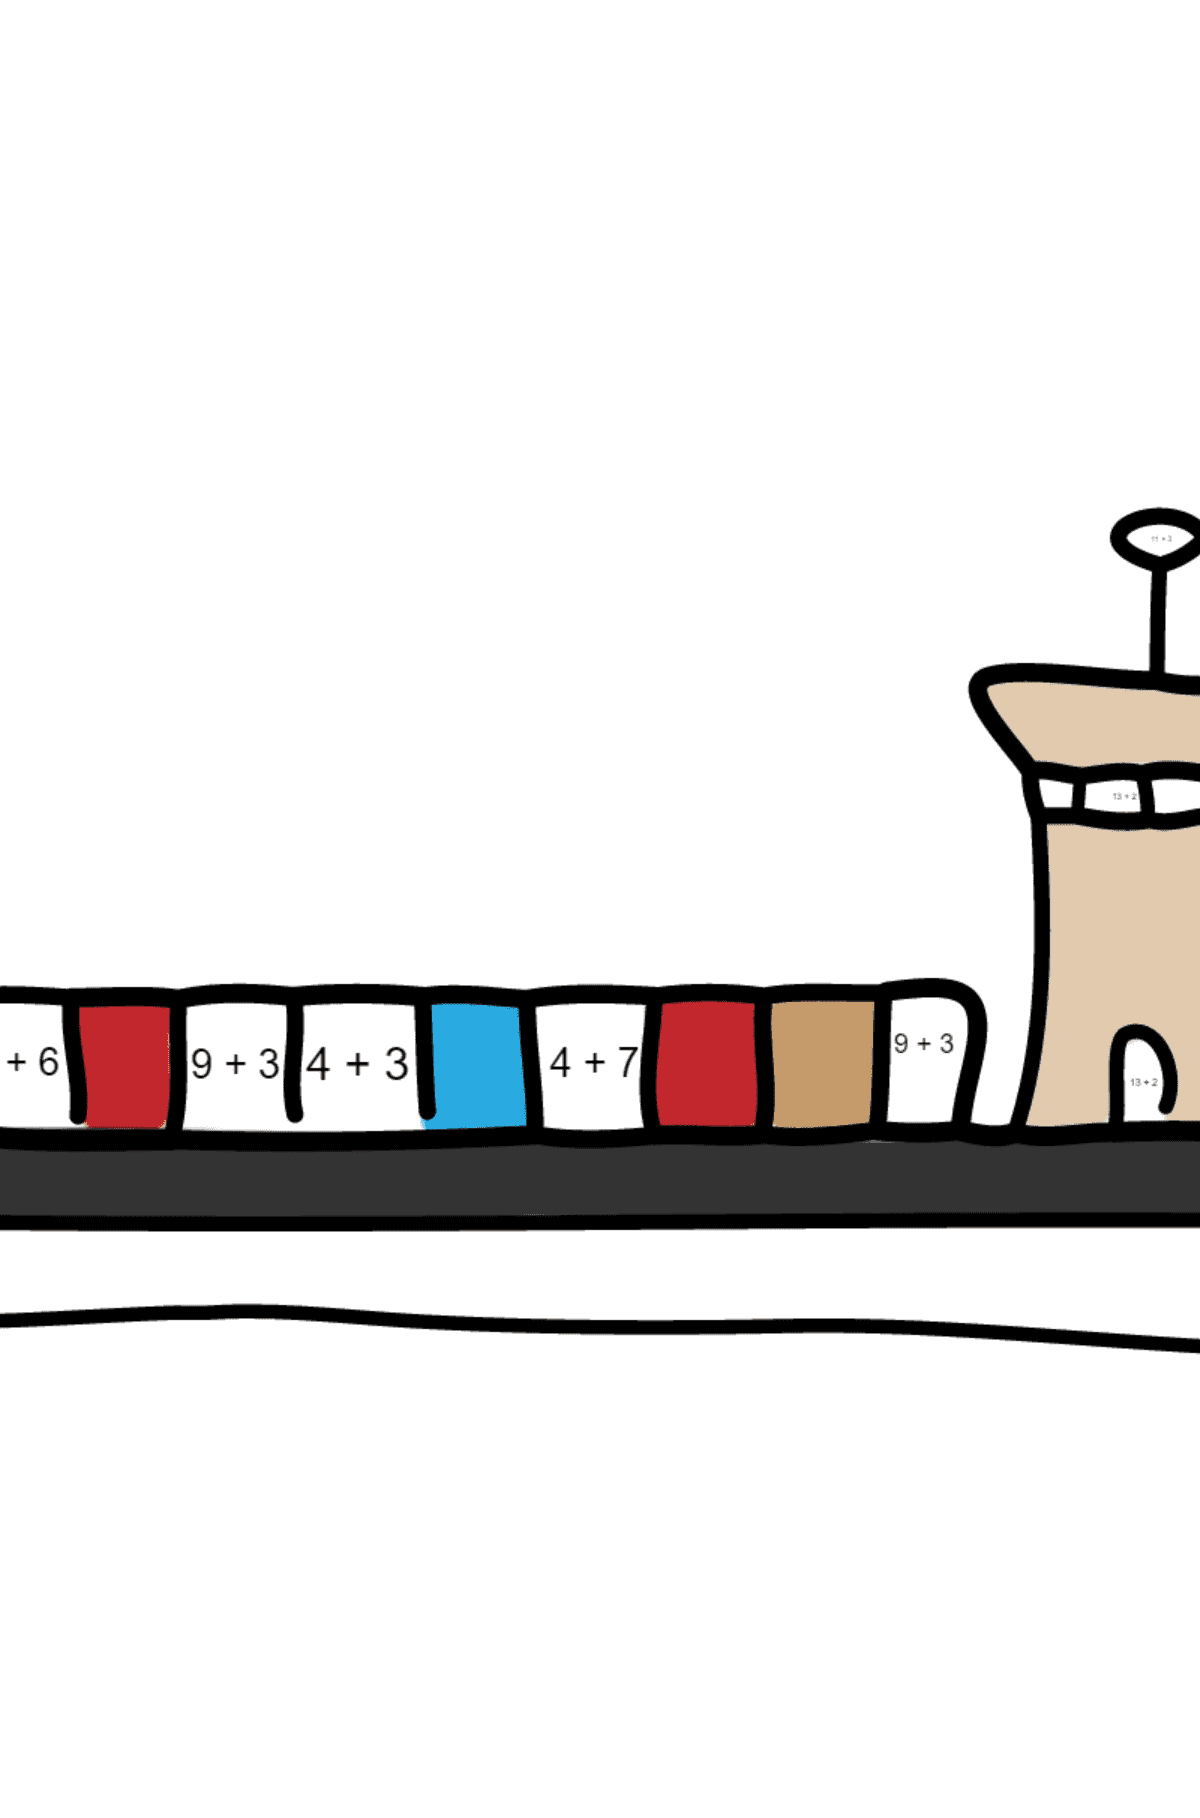 Coloring Page - A Dry Cargo Barge - Math Coloring - Addition for Kids